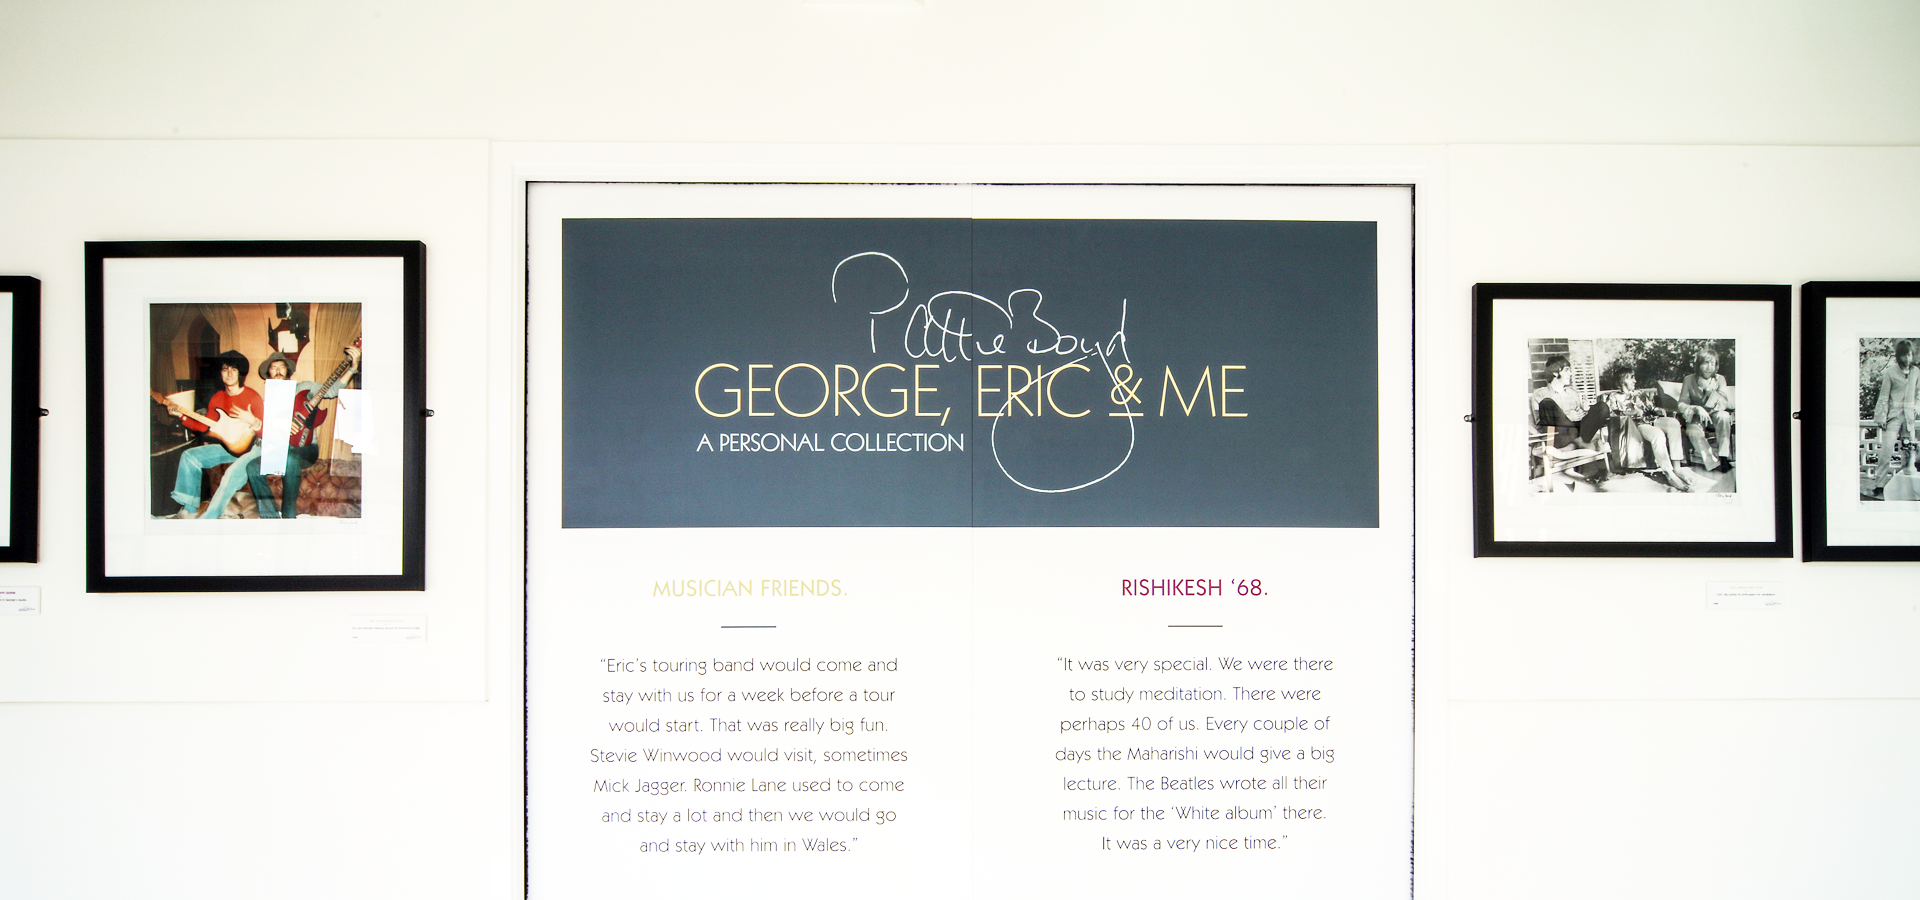 George, Eric and Me: New exhibition opens